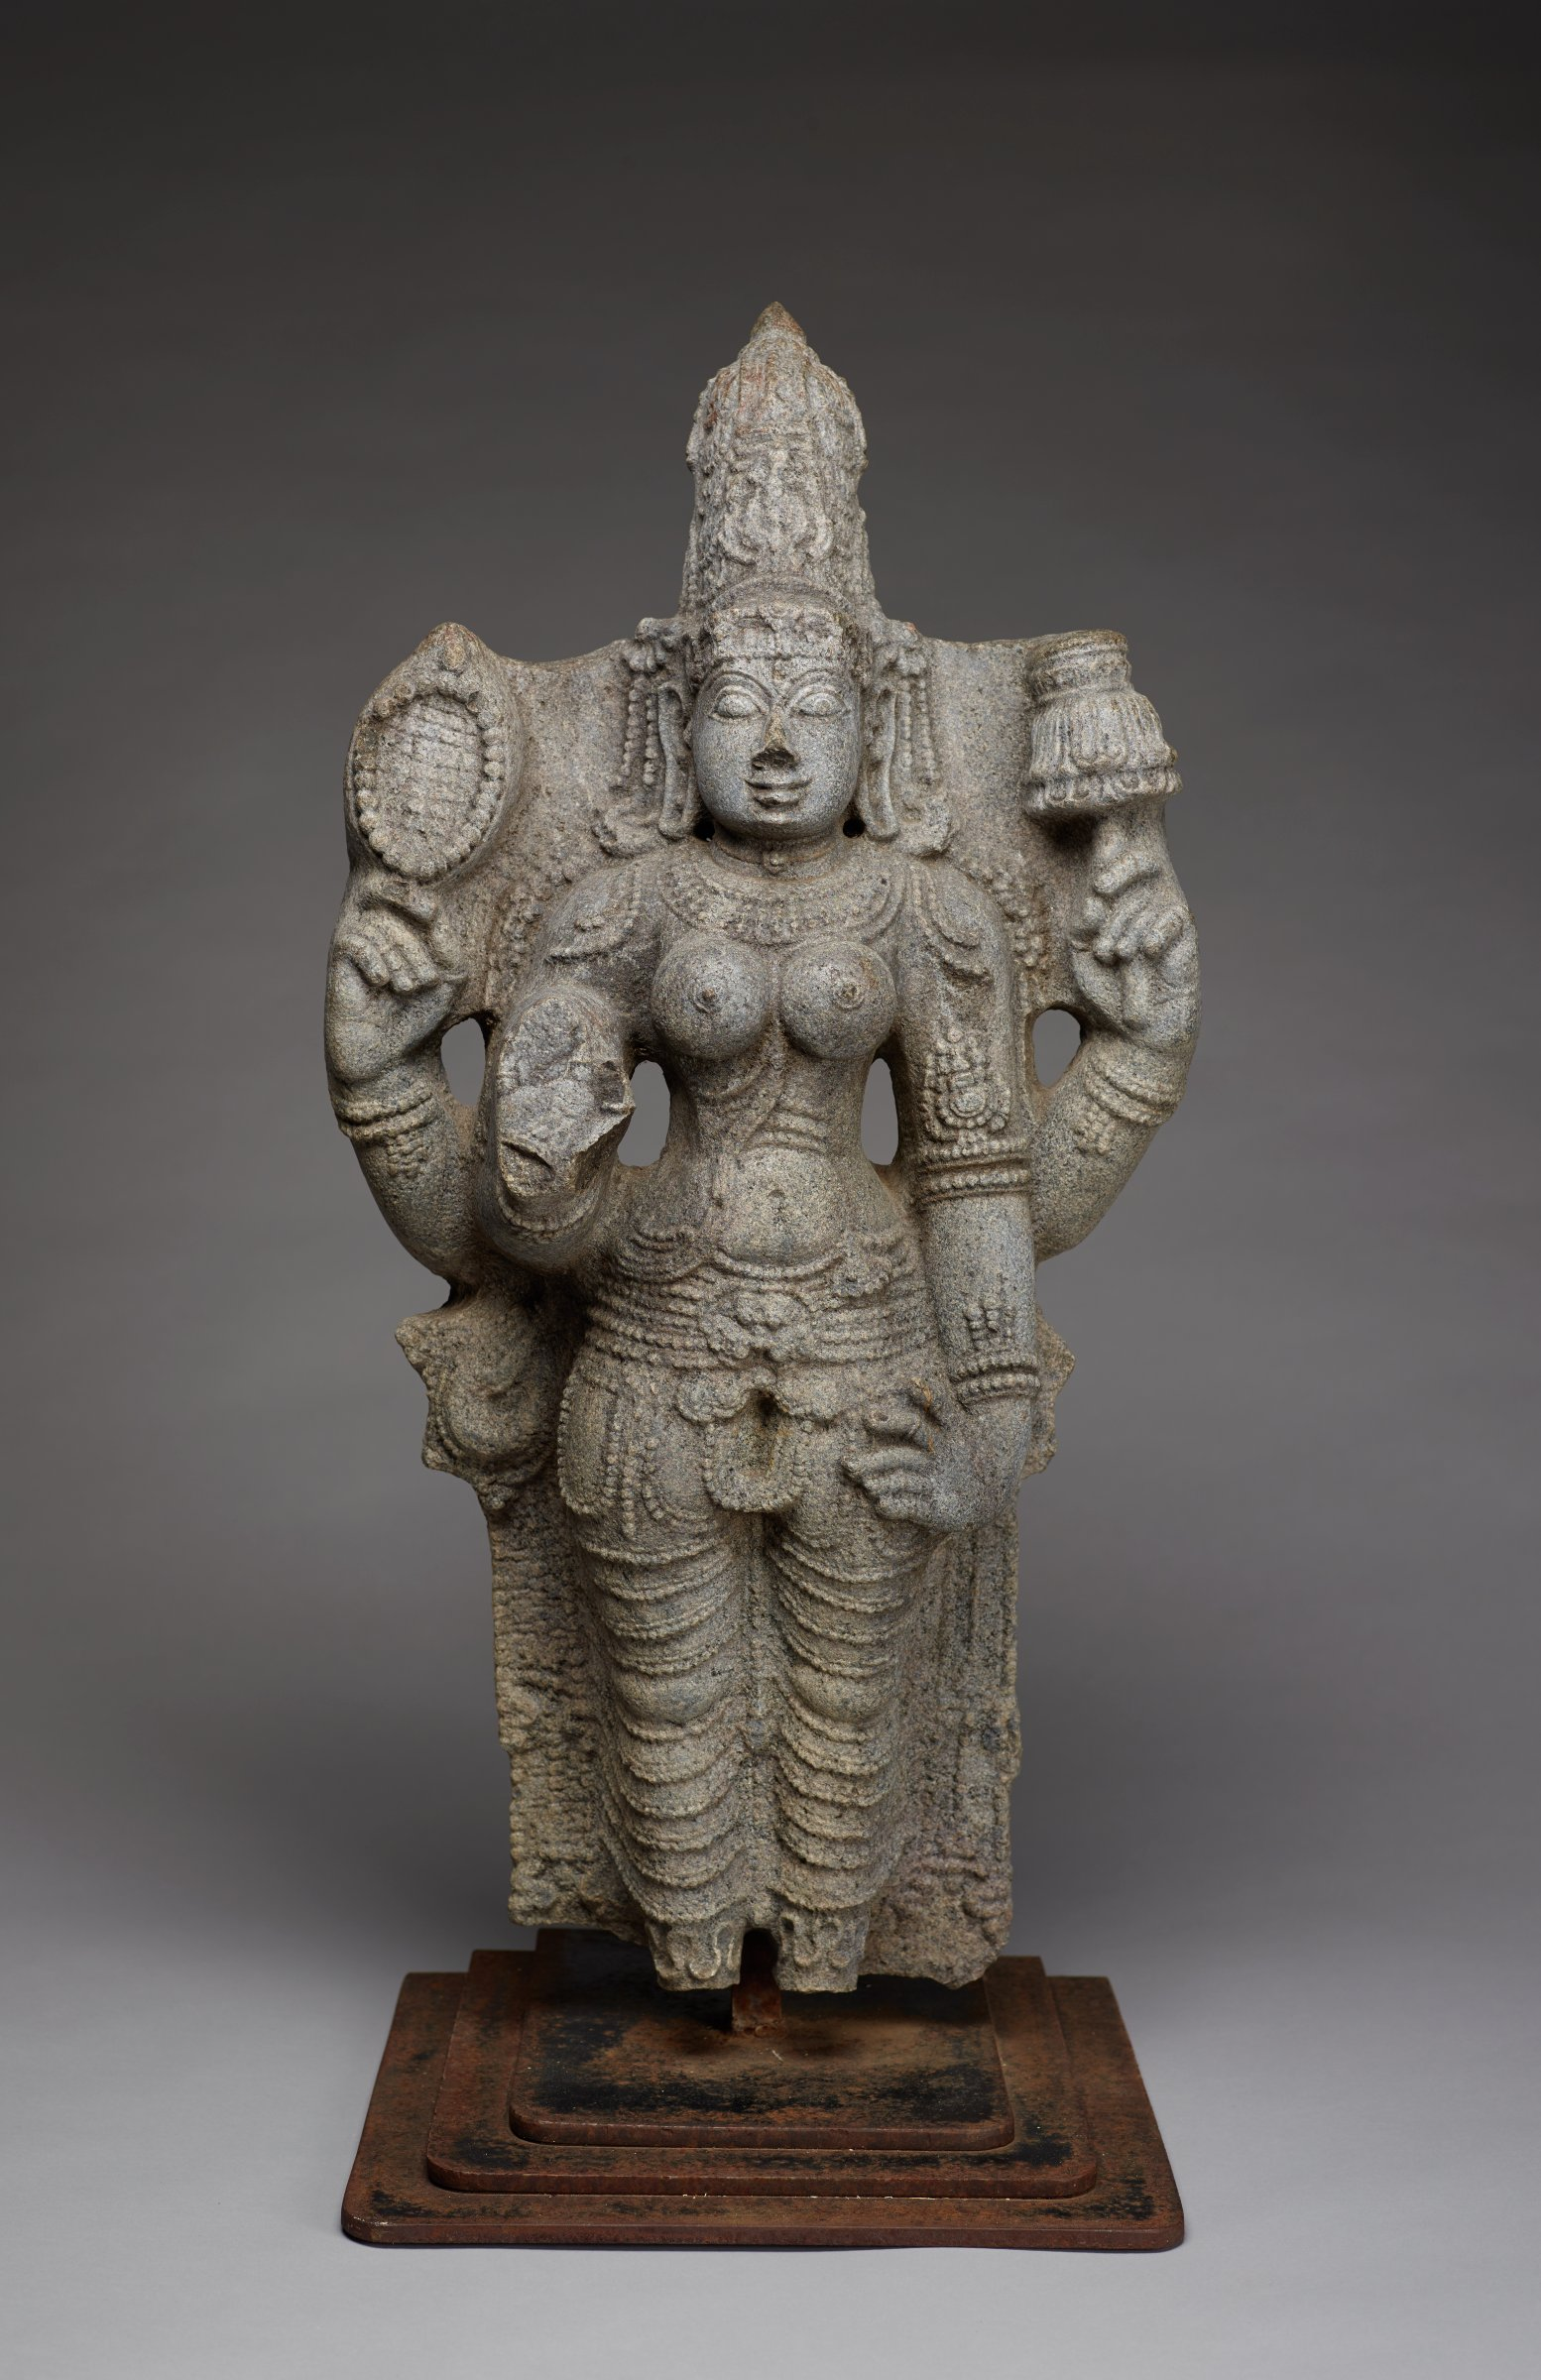 A standing figure of Lakshmi with four arms. Attributes she is holding include a rosary and a lotus in her uppermost arms. Elaborate crown and jewelry. Lower right hand is missing.